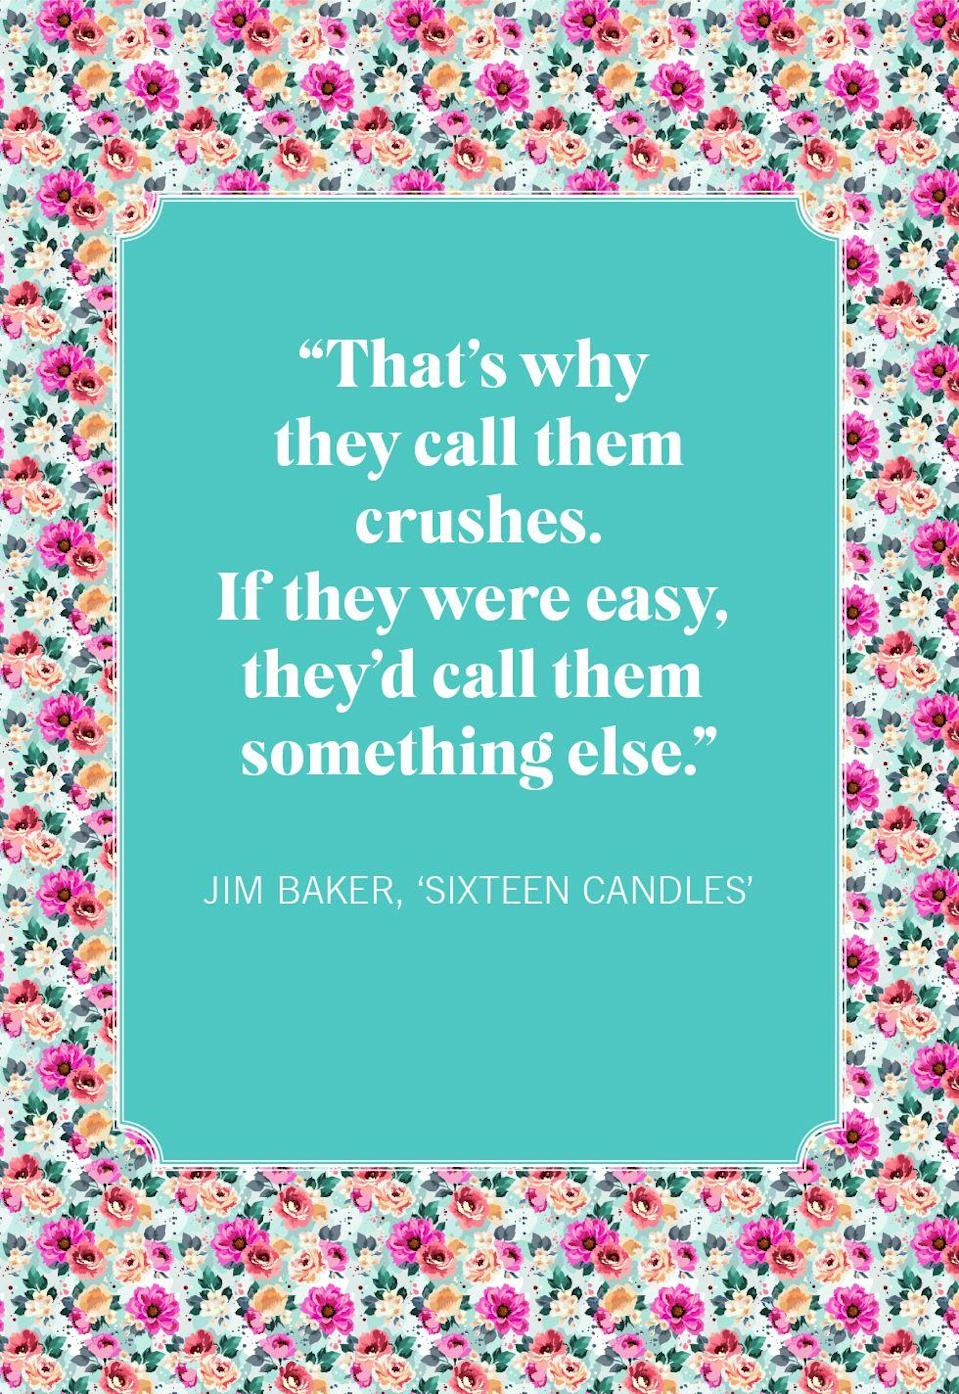 "<p>""That's why they call them crushes. If they were easy, they'd call them something else.""</p>"